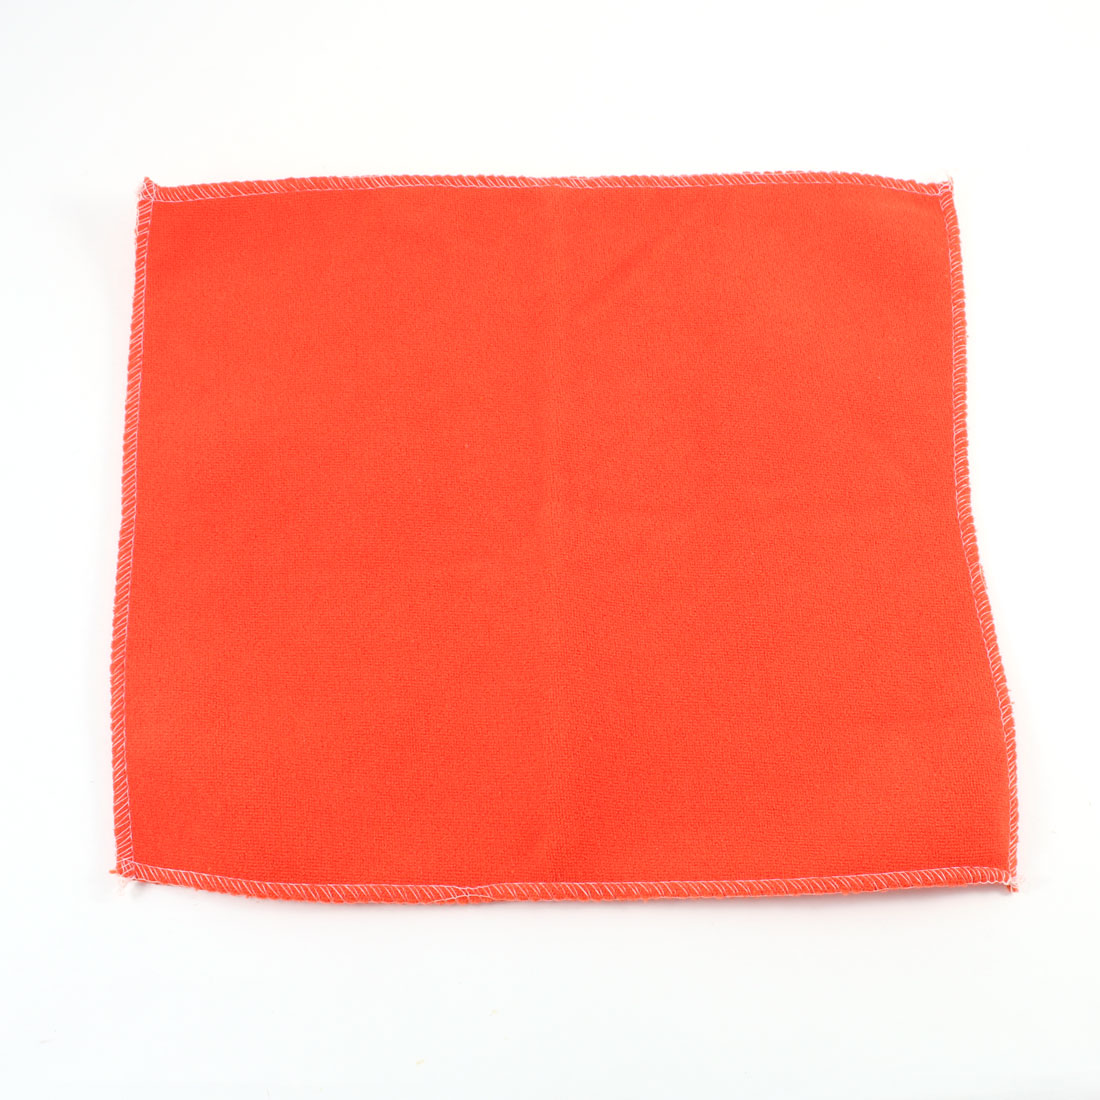 Vehicle Car Door Glass Wash Towel Cloth Cleaning Tool Orange Red